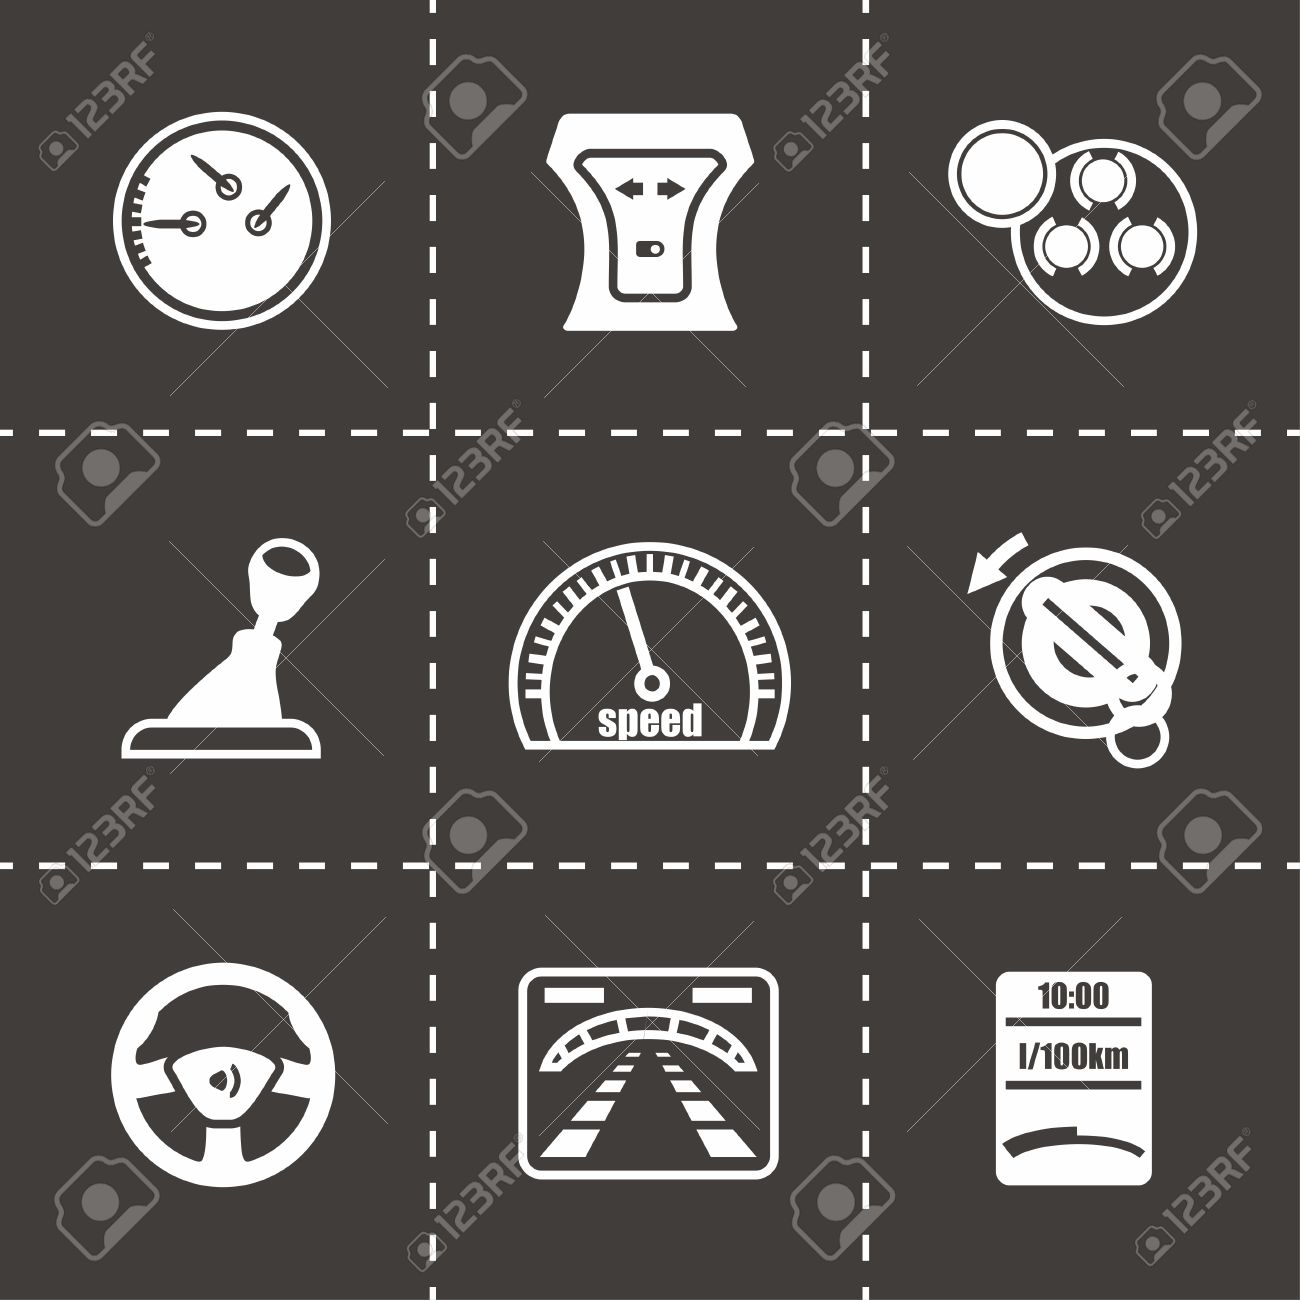 Vector Car Dashboard Icon Set On Black Background Royalty Free - Car image sign of dashboardcar dashboard icons stock images royaltyfree imagesvectors